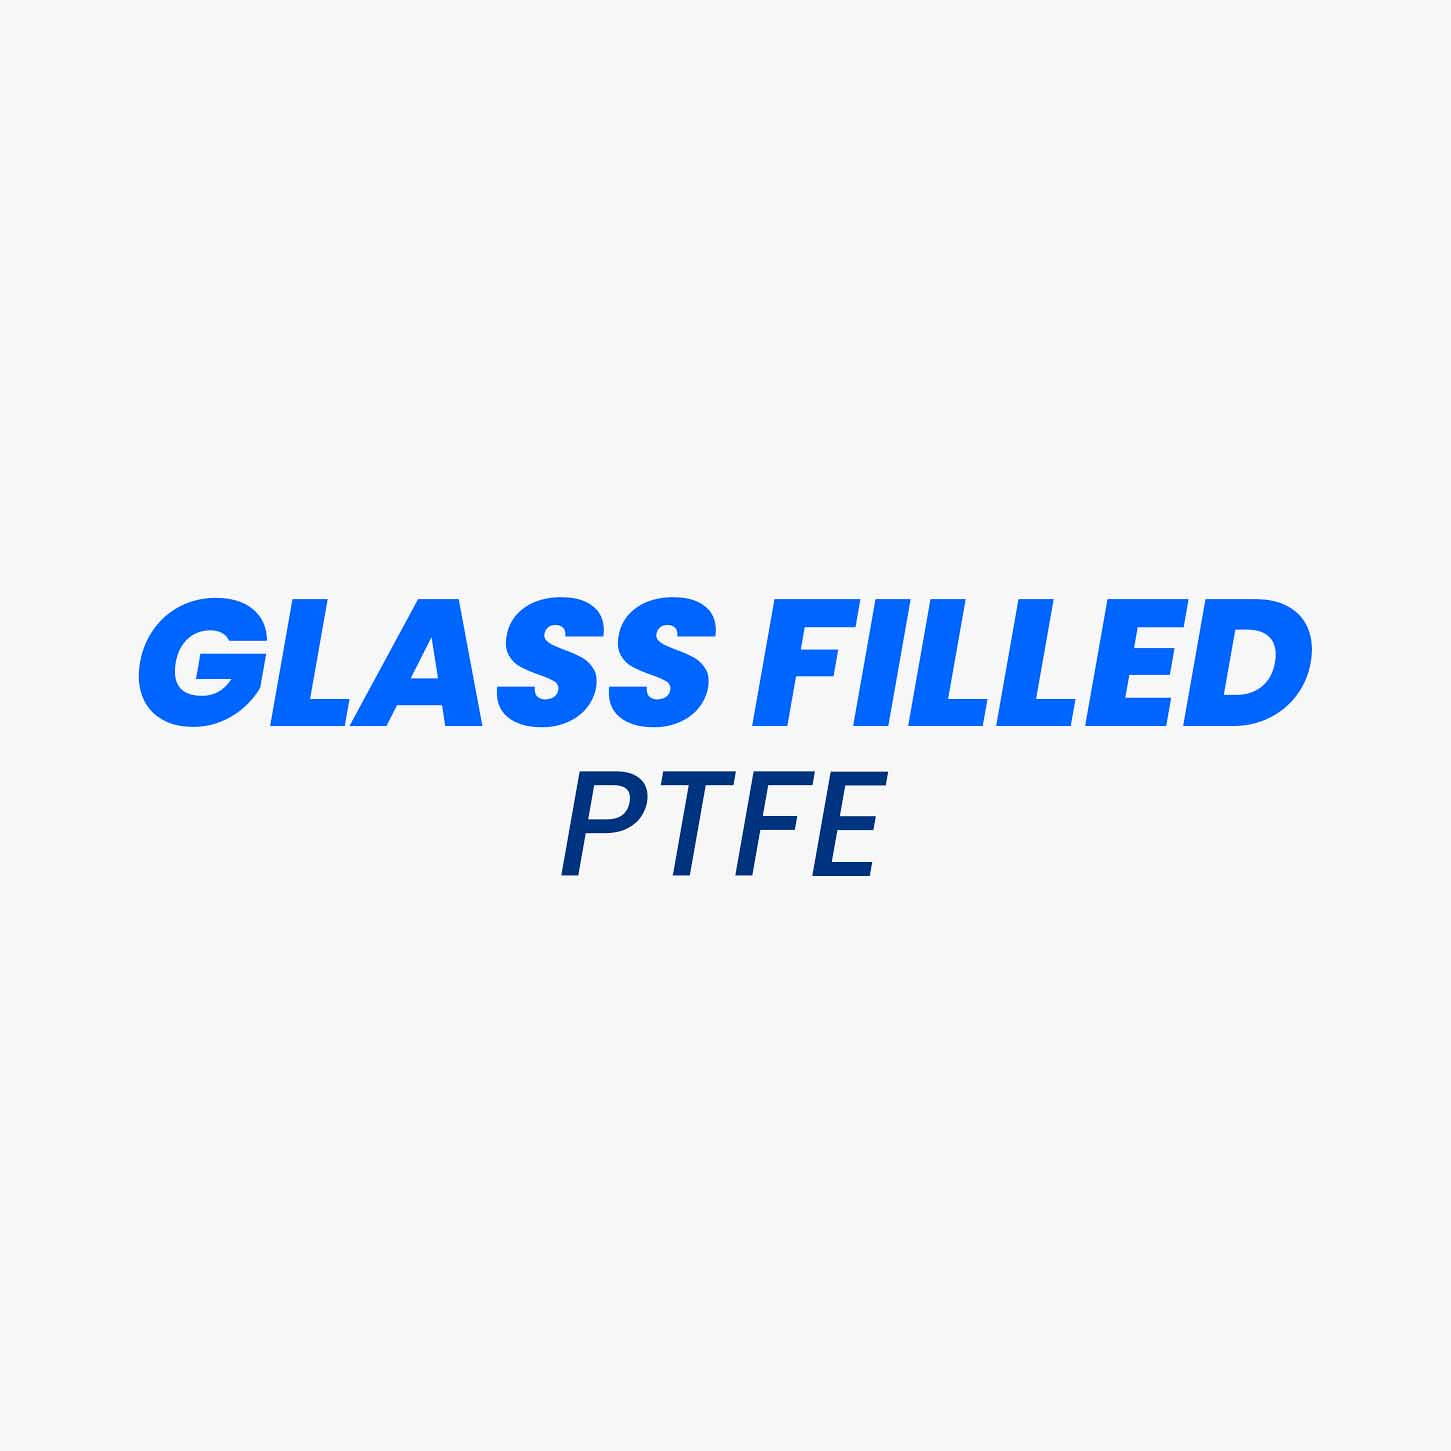 Glass fibres are used as the filler for reinforcing the Glass filled PTFE. Due to the addition of this filler the mechanical properties, such as creep performance, wear resistance, and compressive strength of the PTFE is improved. Glass filled PTFE are suitable for the environments of oxidizing nature. According to the application requirement, the filler percentage composition of glass fibre can be accommodated as per requirement. With the increase in glass fibre filler percentage, the mechanical properties of the PTFE also improve, but this also increases the coefficient of friction as compared to that of Virgin PTFE.